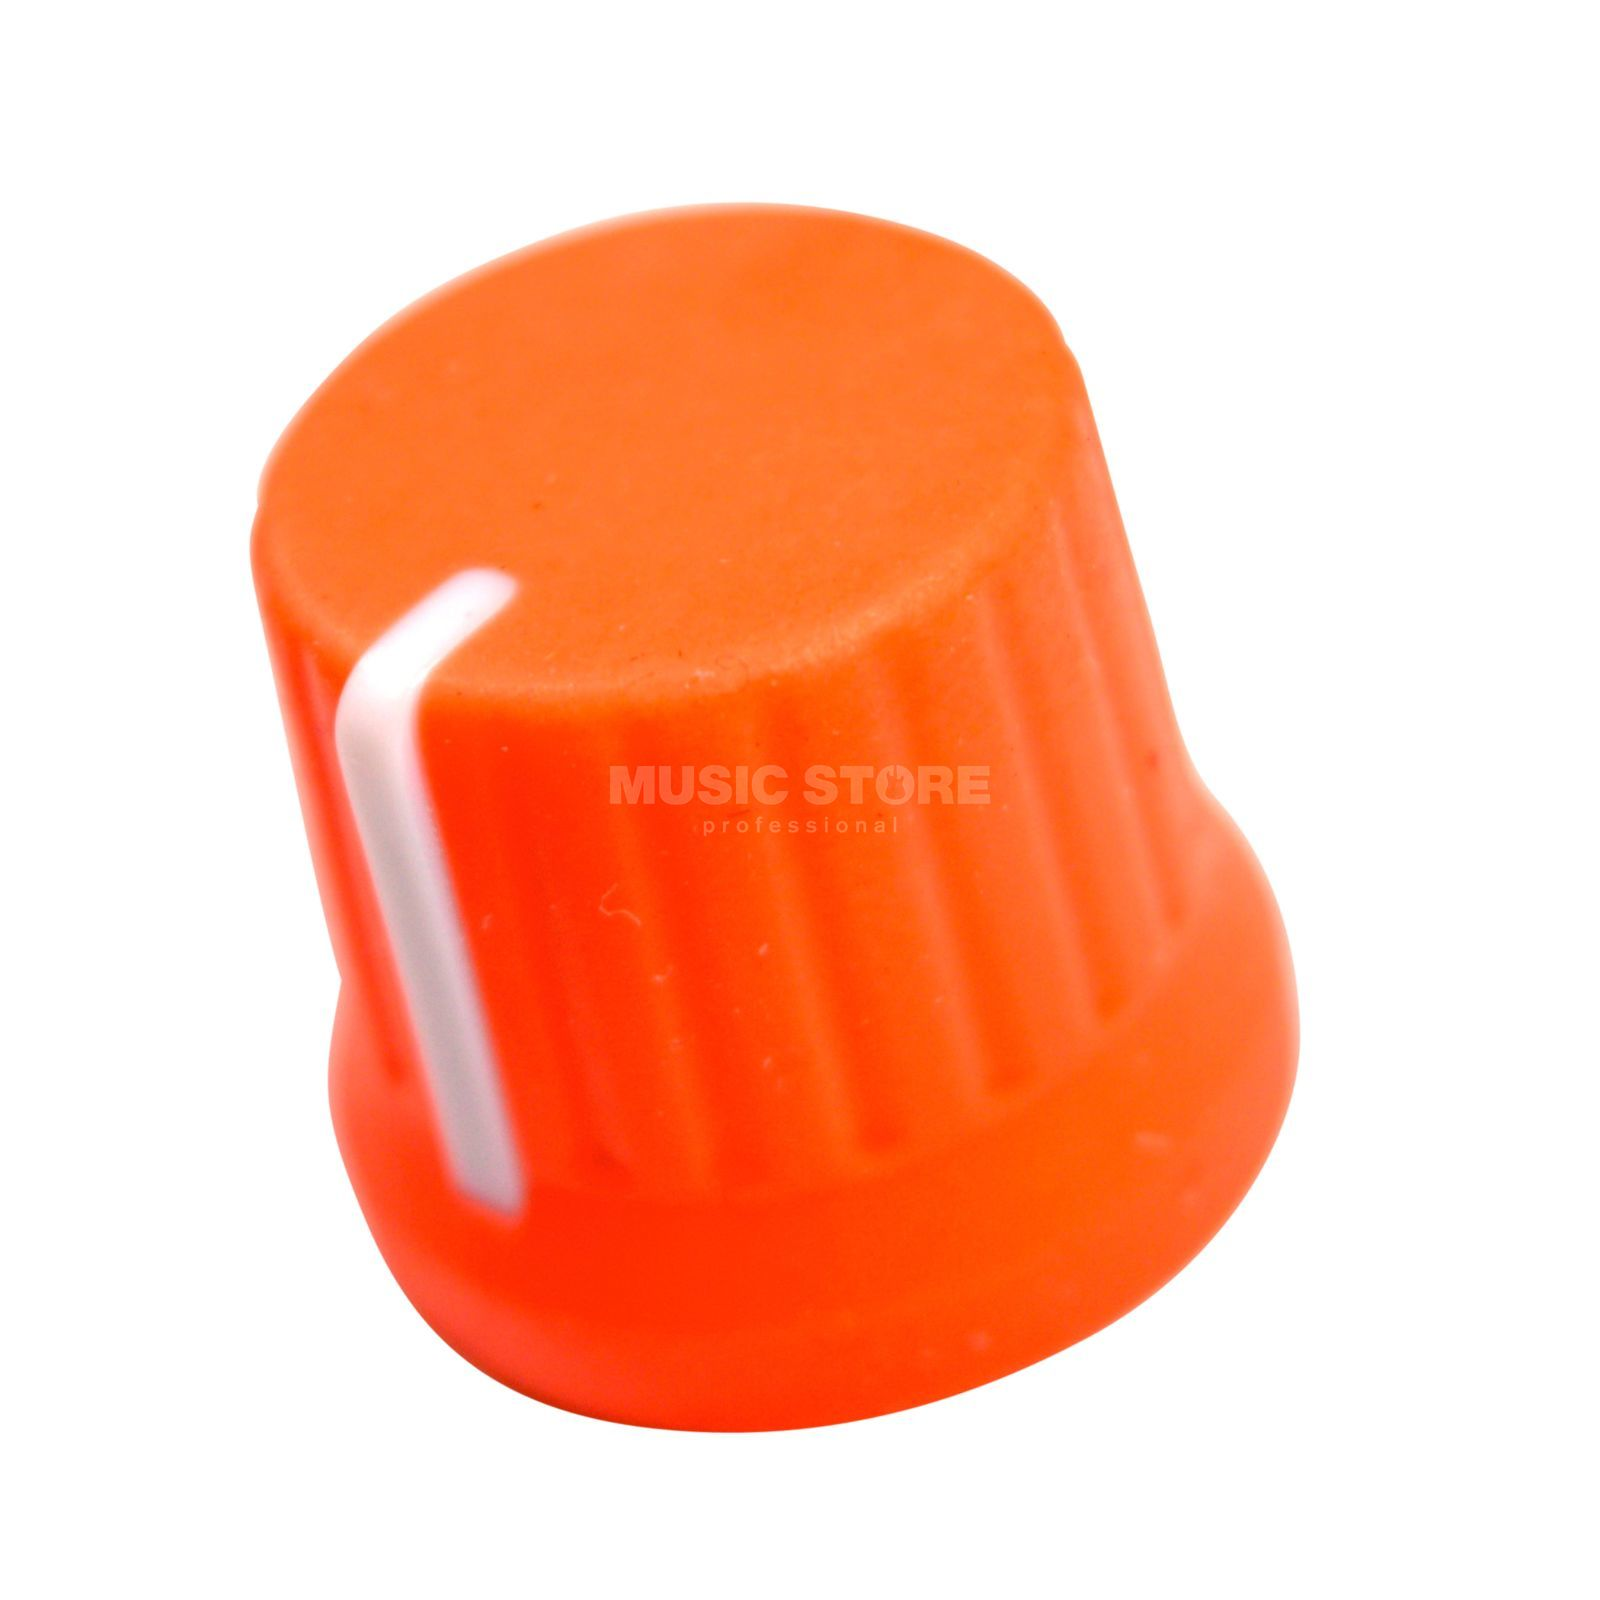 DJ TECHTOOLS Chroma Caps Fatty Knob neon orange Produktbild